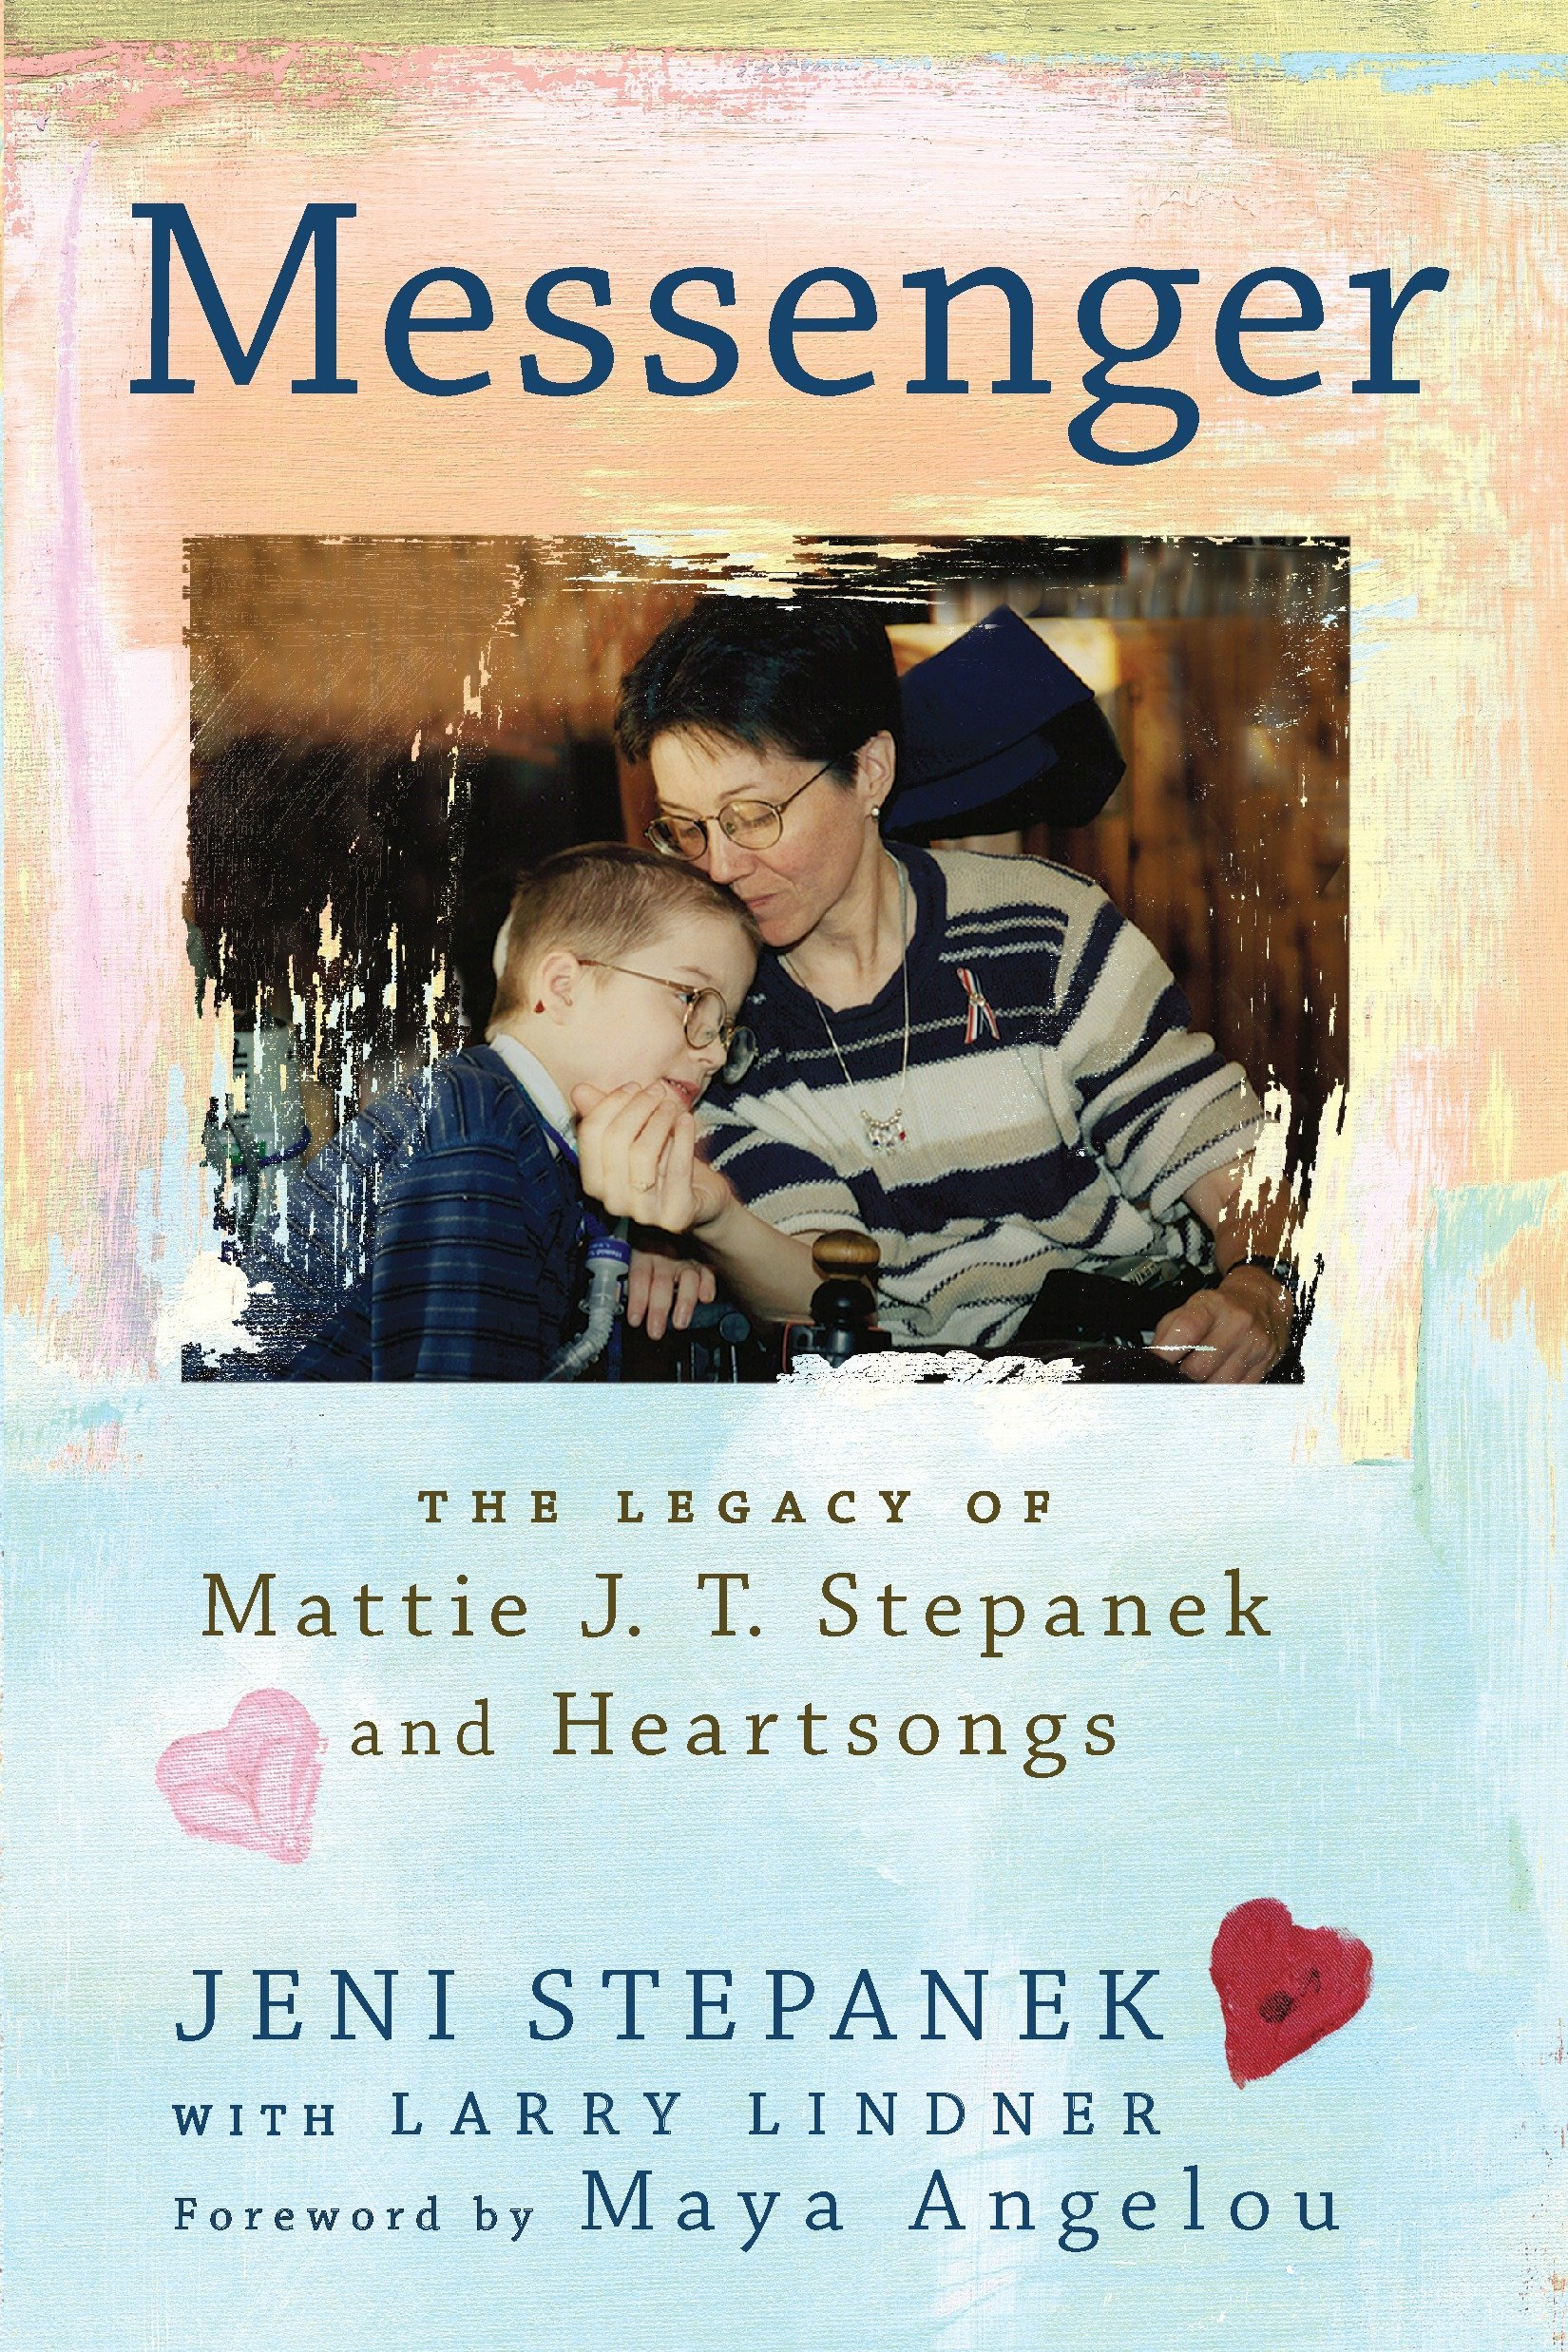 Download Messenger: The Legacy of Mattie J.T. Stepanek and Heartsongs PDF